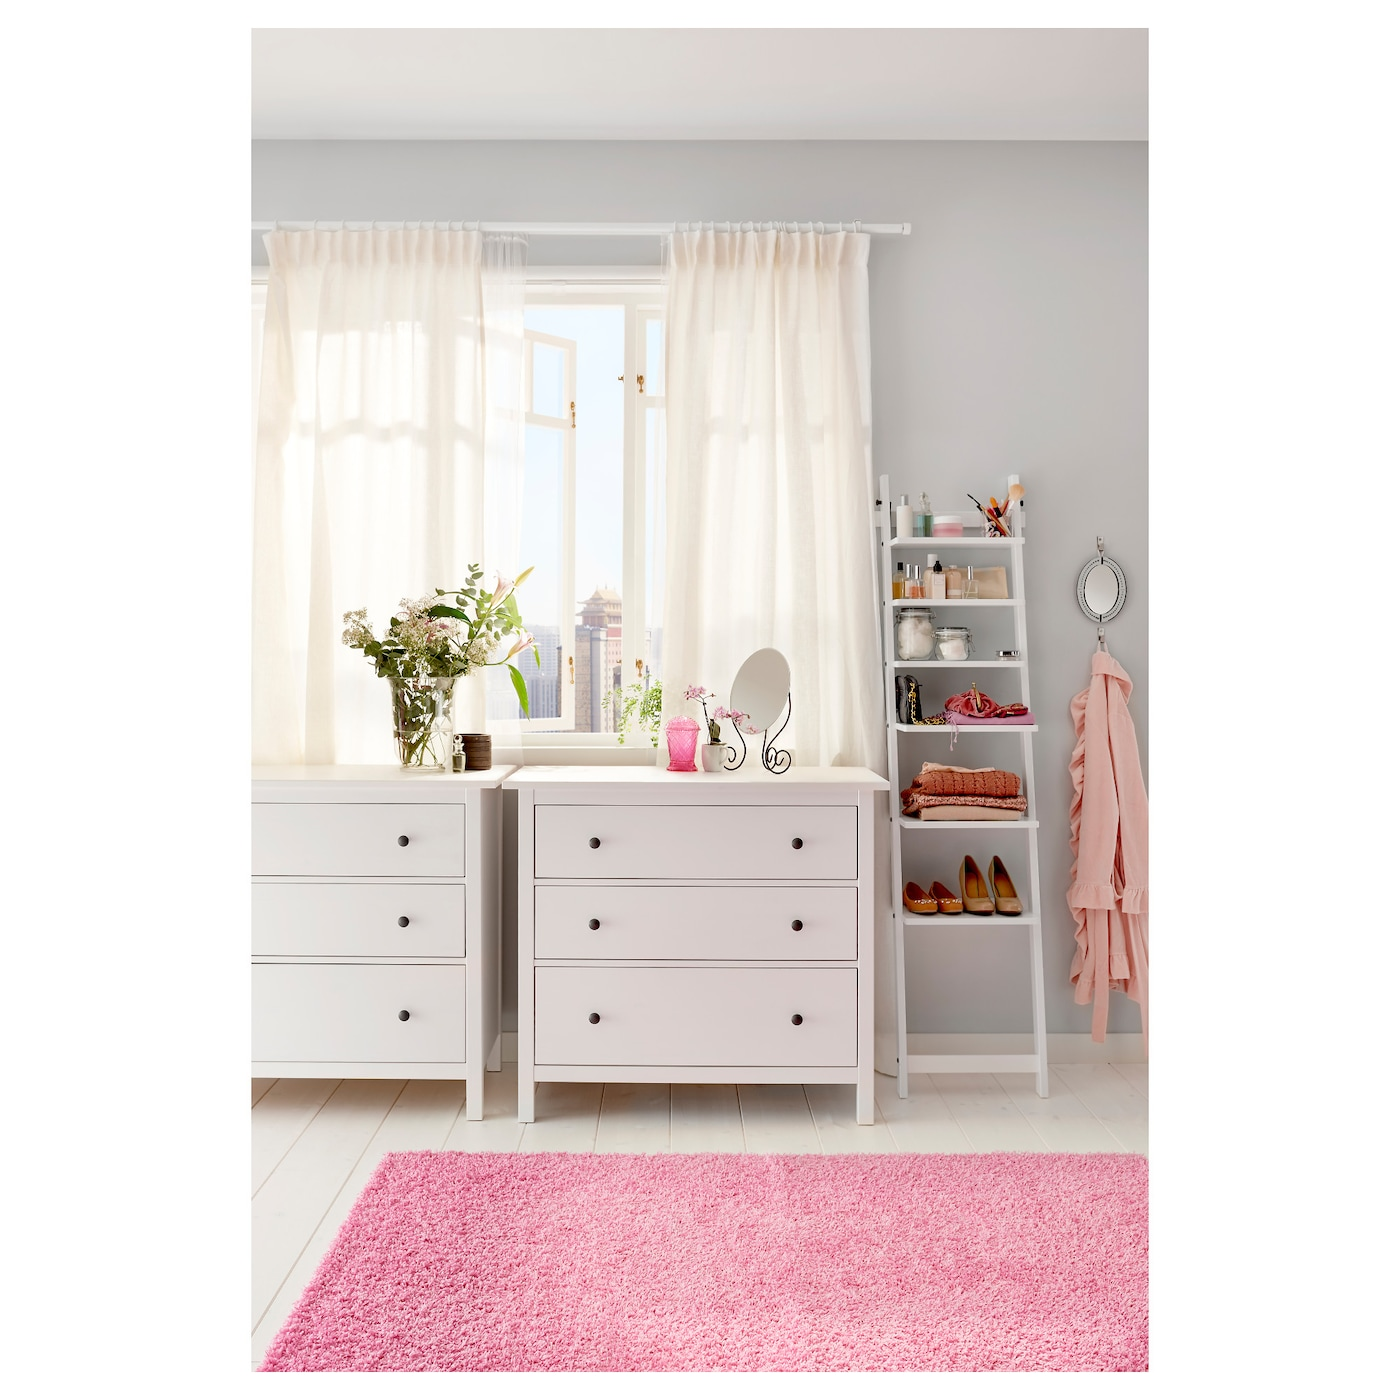 Ikea Hemnes Chest Of 3 Drawers Made Solid Wood Which Is A Hardwearing And